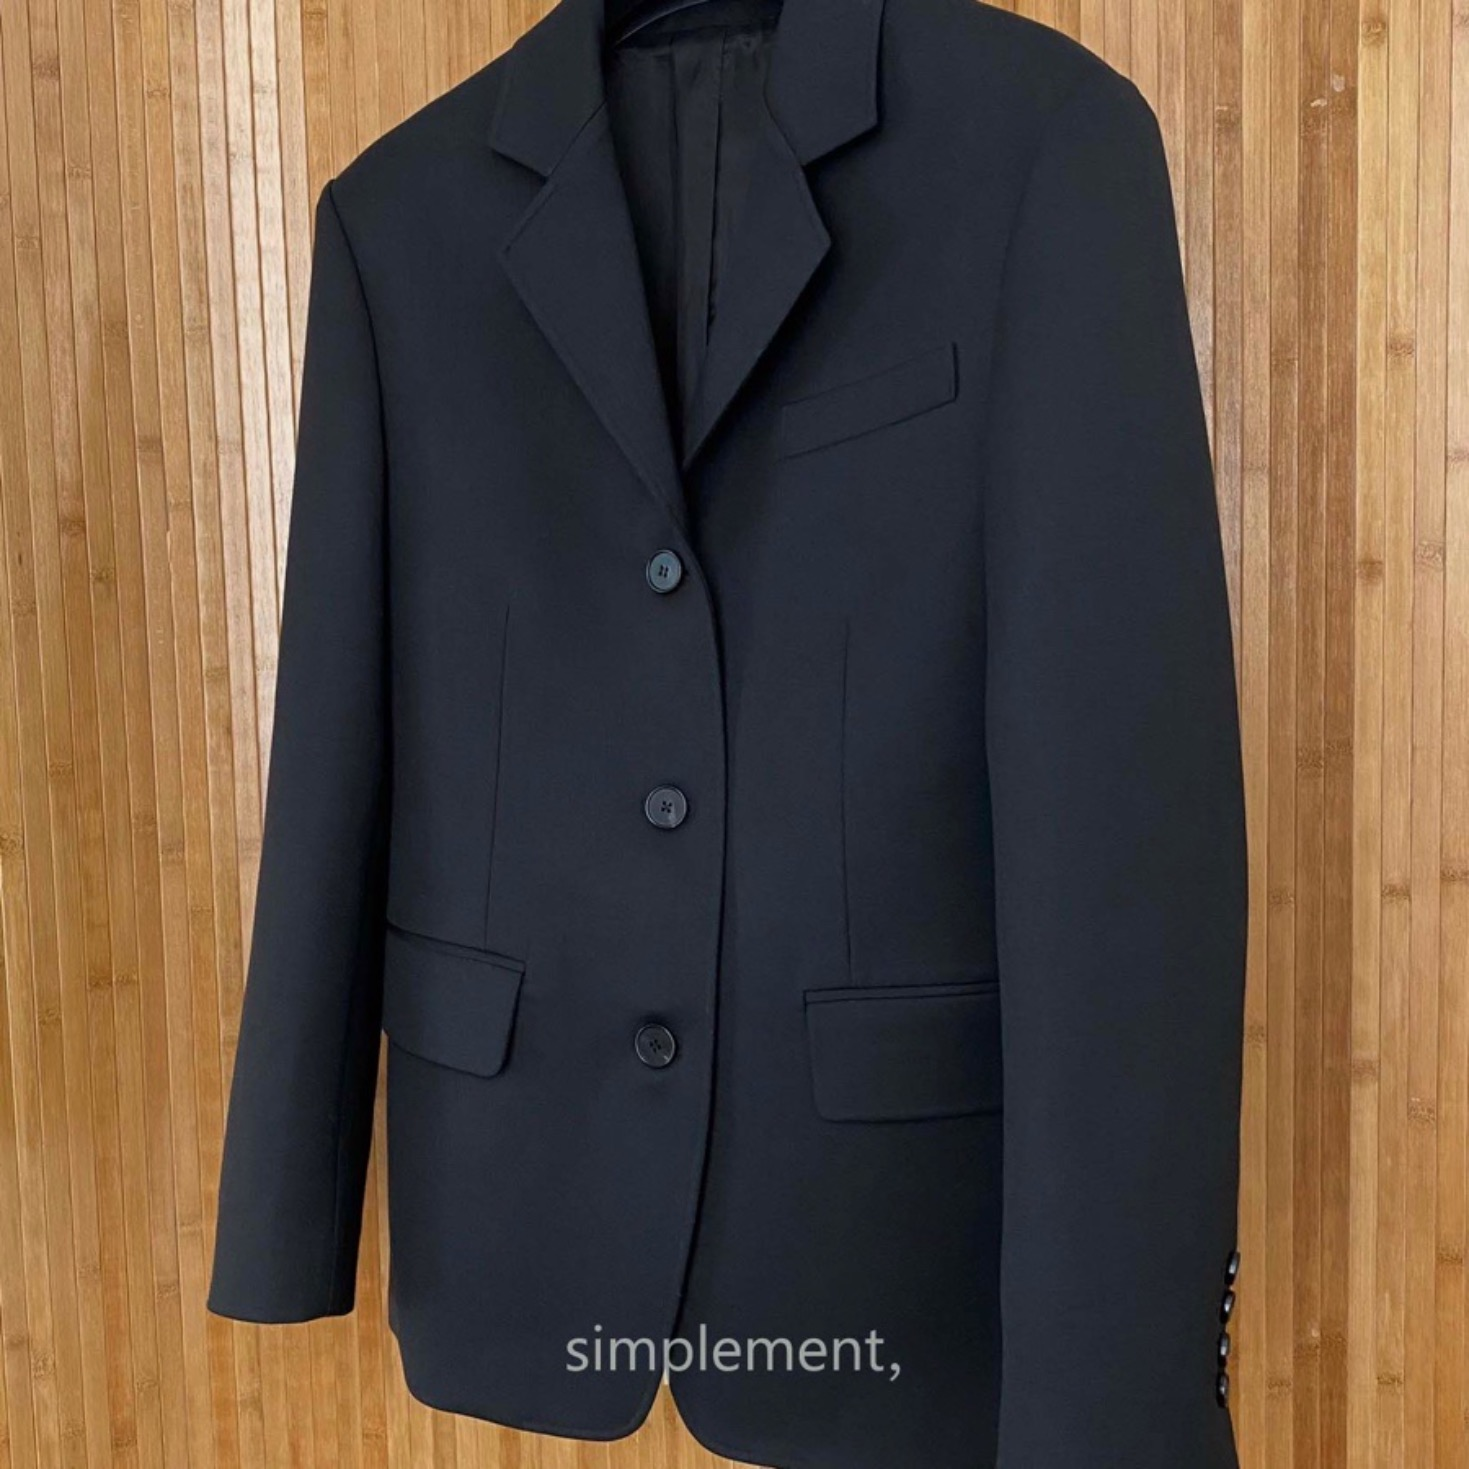 160 Homme Classic Jacket in Black